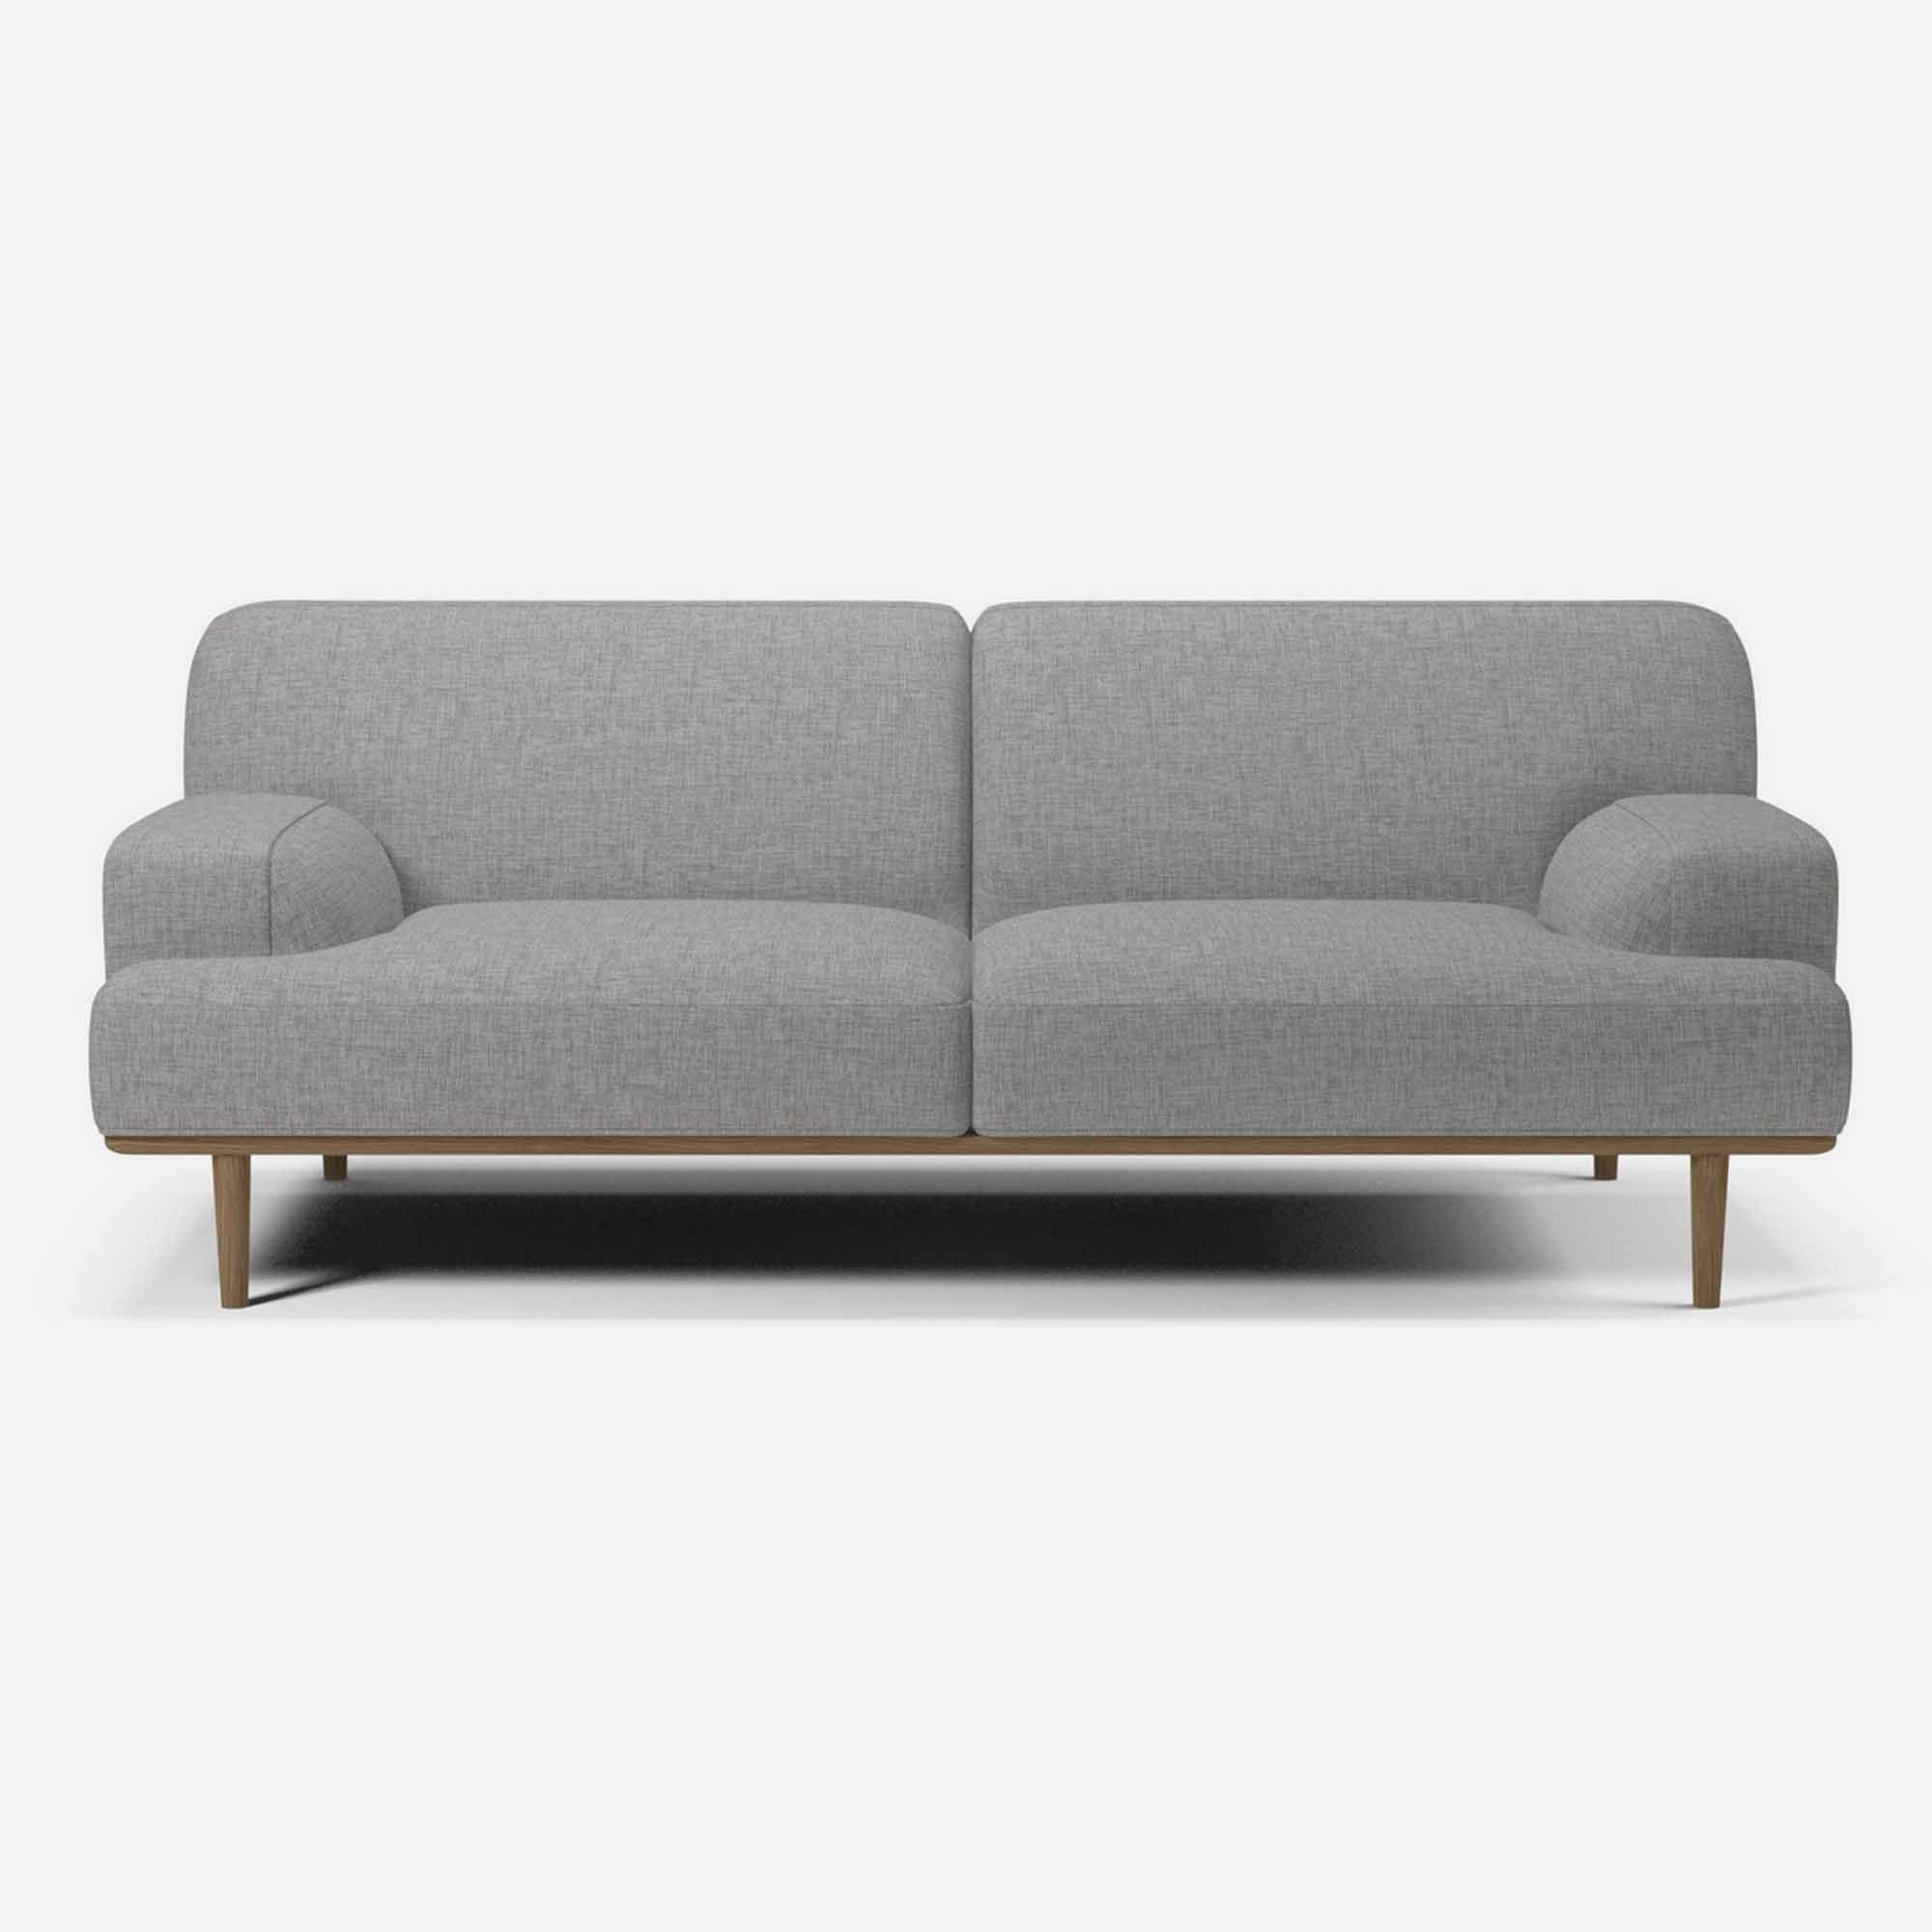 Canape Madison 2 Places 1 2 Nantes Light Grey Bolia Canape Cuir Canape Lit Design Et Canape Angle Convertible